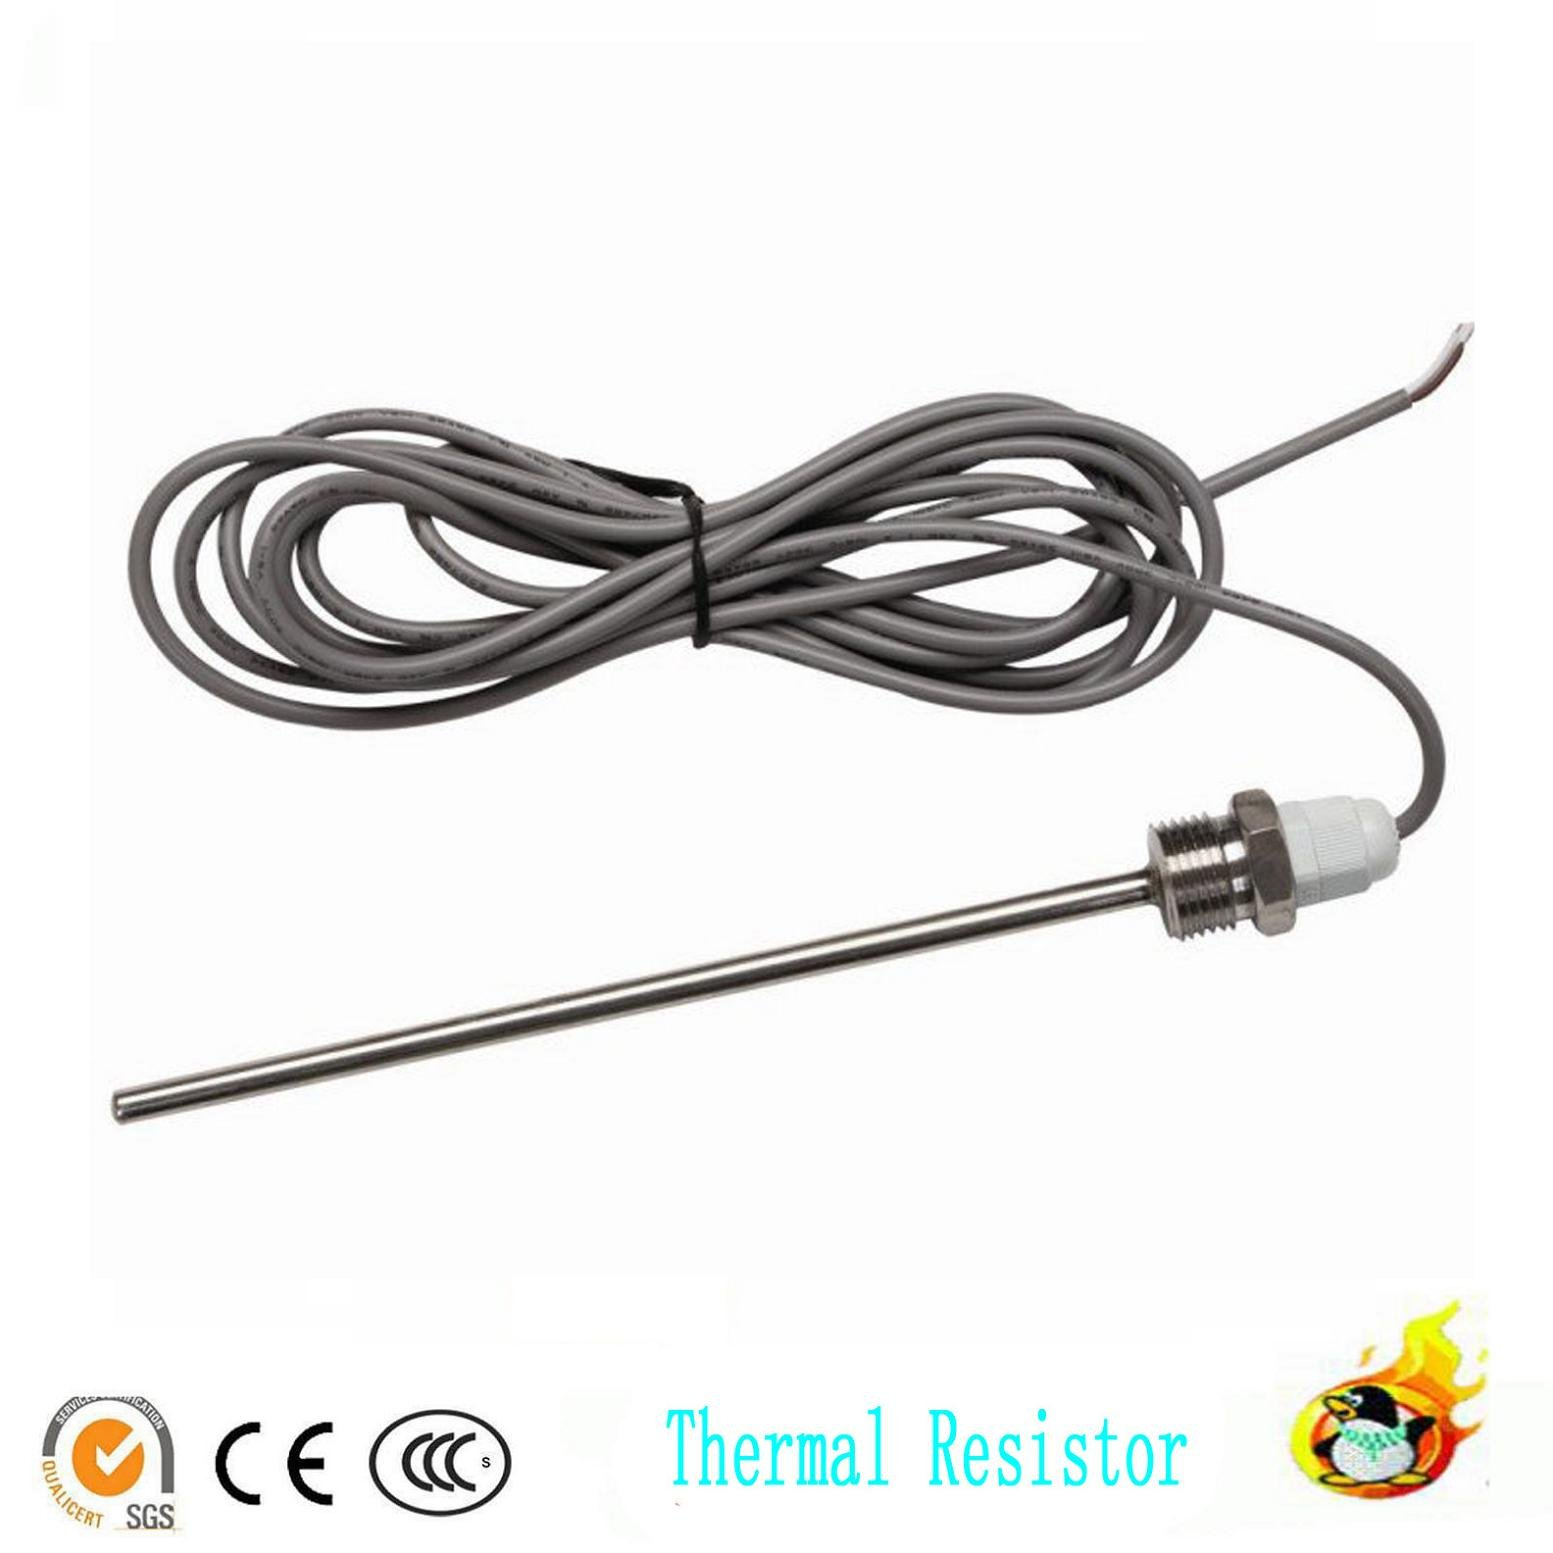 Resistance Thermometer Ntc 10k Sensor B Dia 6mm For